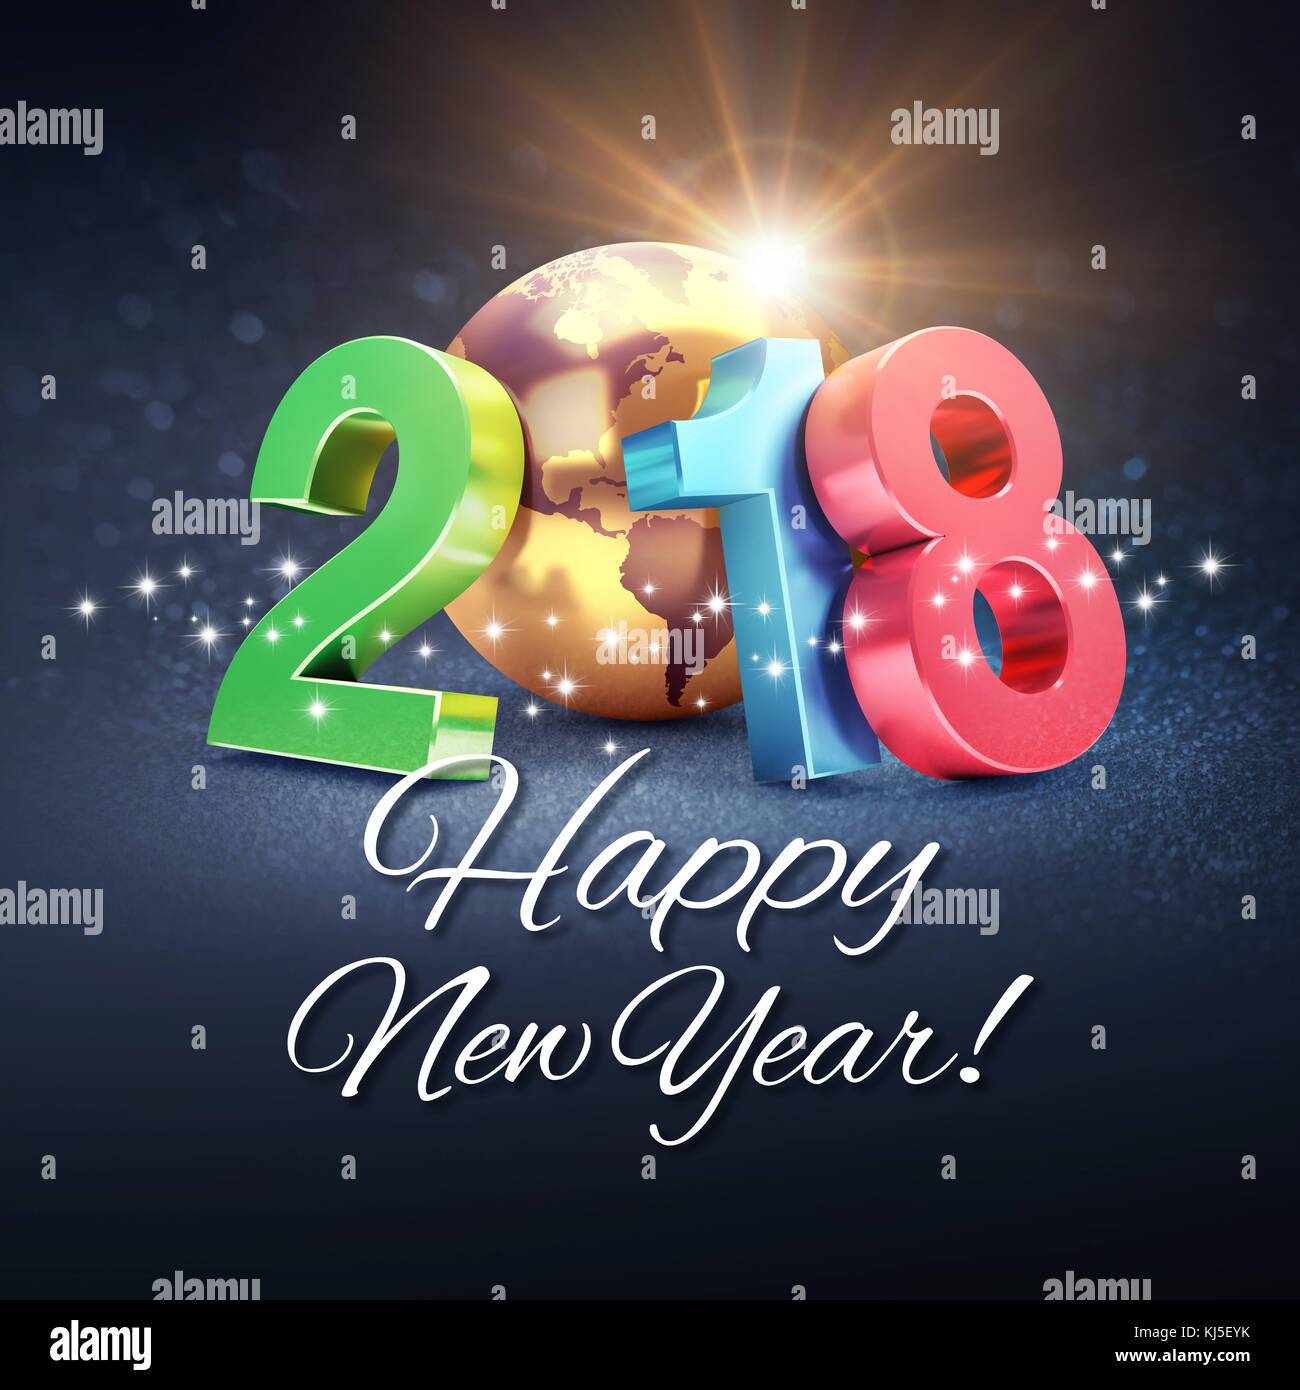 Greetings And Colorful New Year Date 2018 Composed With A Gold